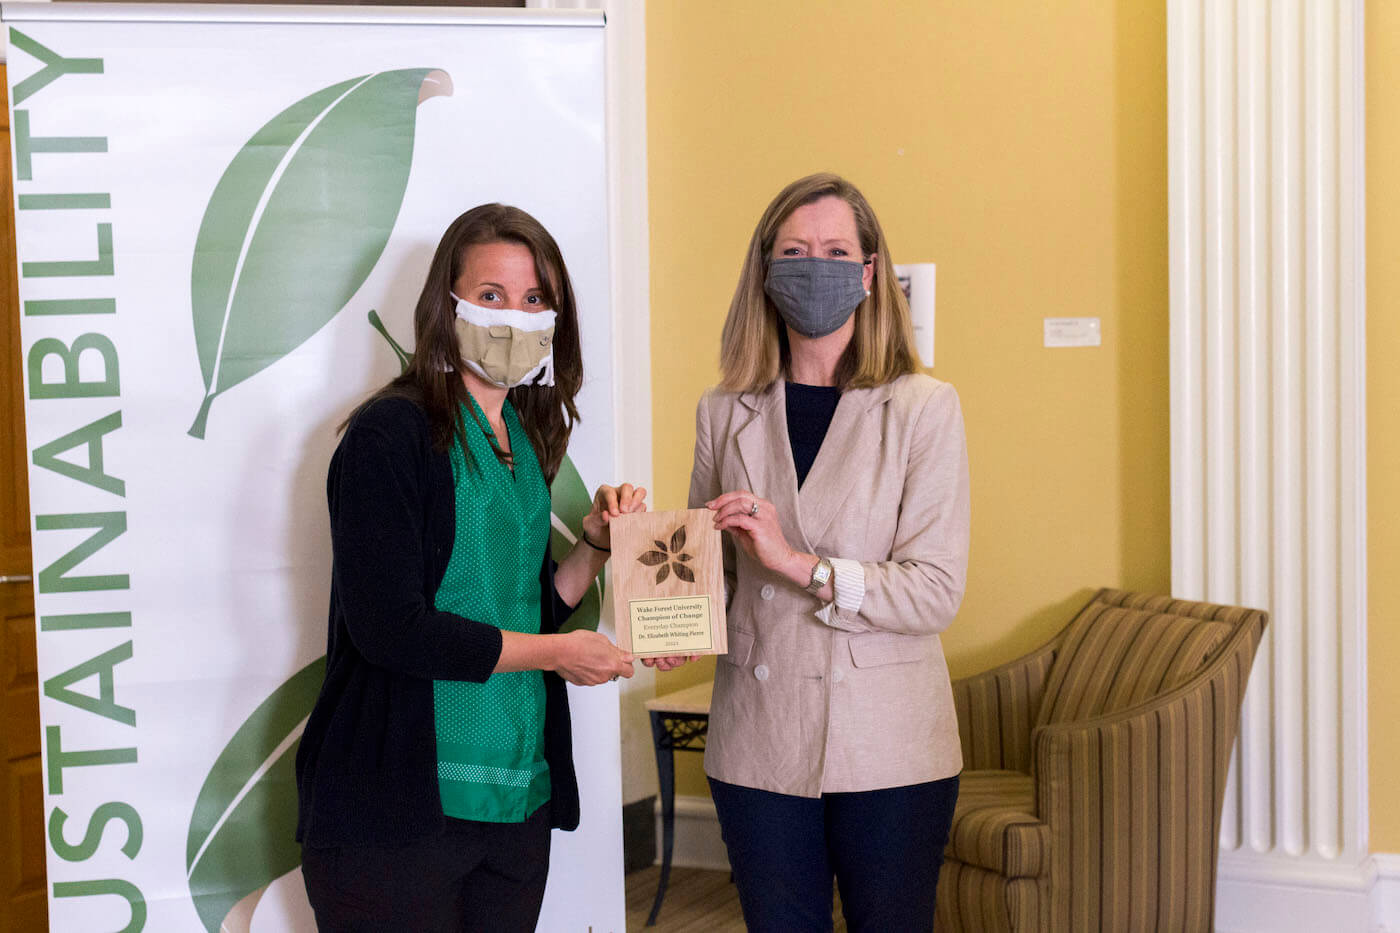 Dr. Elizabeth Whiting Pierce Receives Sustainability Award